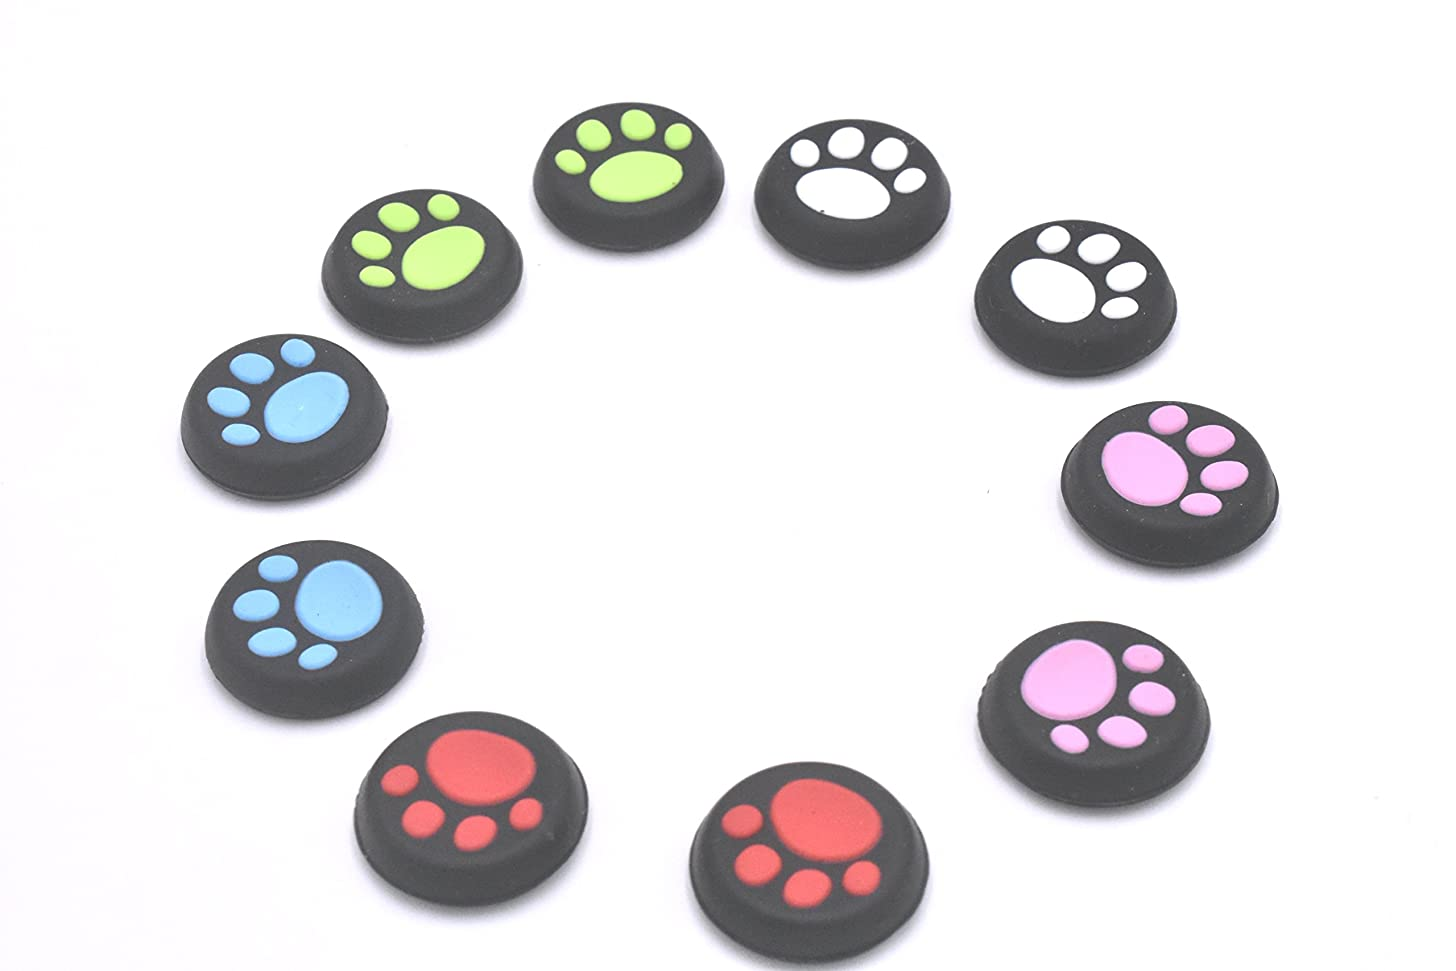 5 Pairs Replacement Cat Pad Style Silicone Analog Controller Joystick Thumb Stick Grip Cap Cover for PS4,PS3,Xbox 360,Xbox One Controller